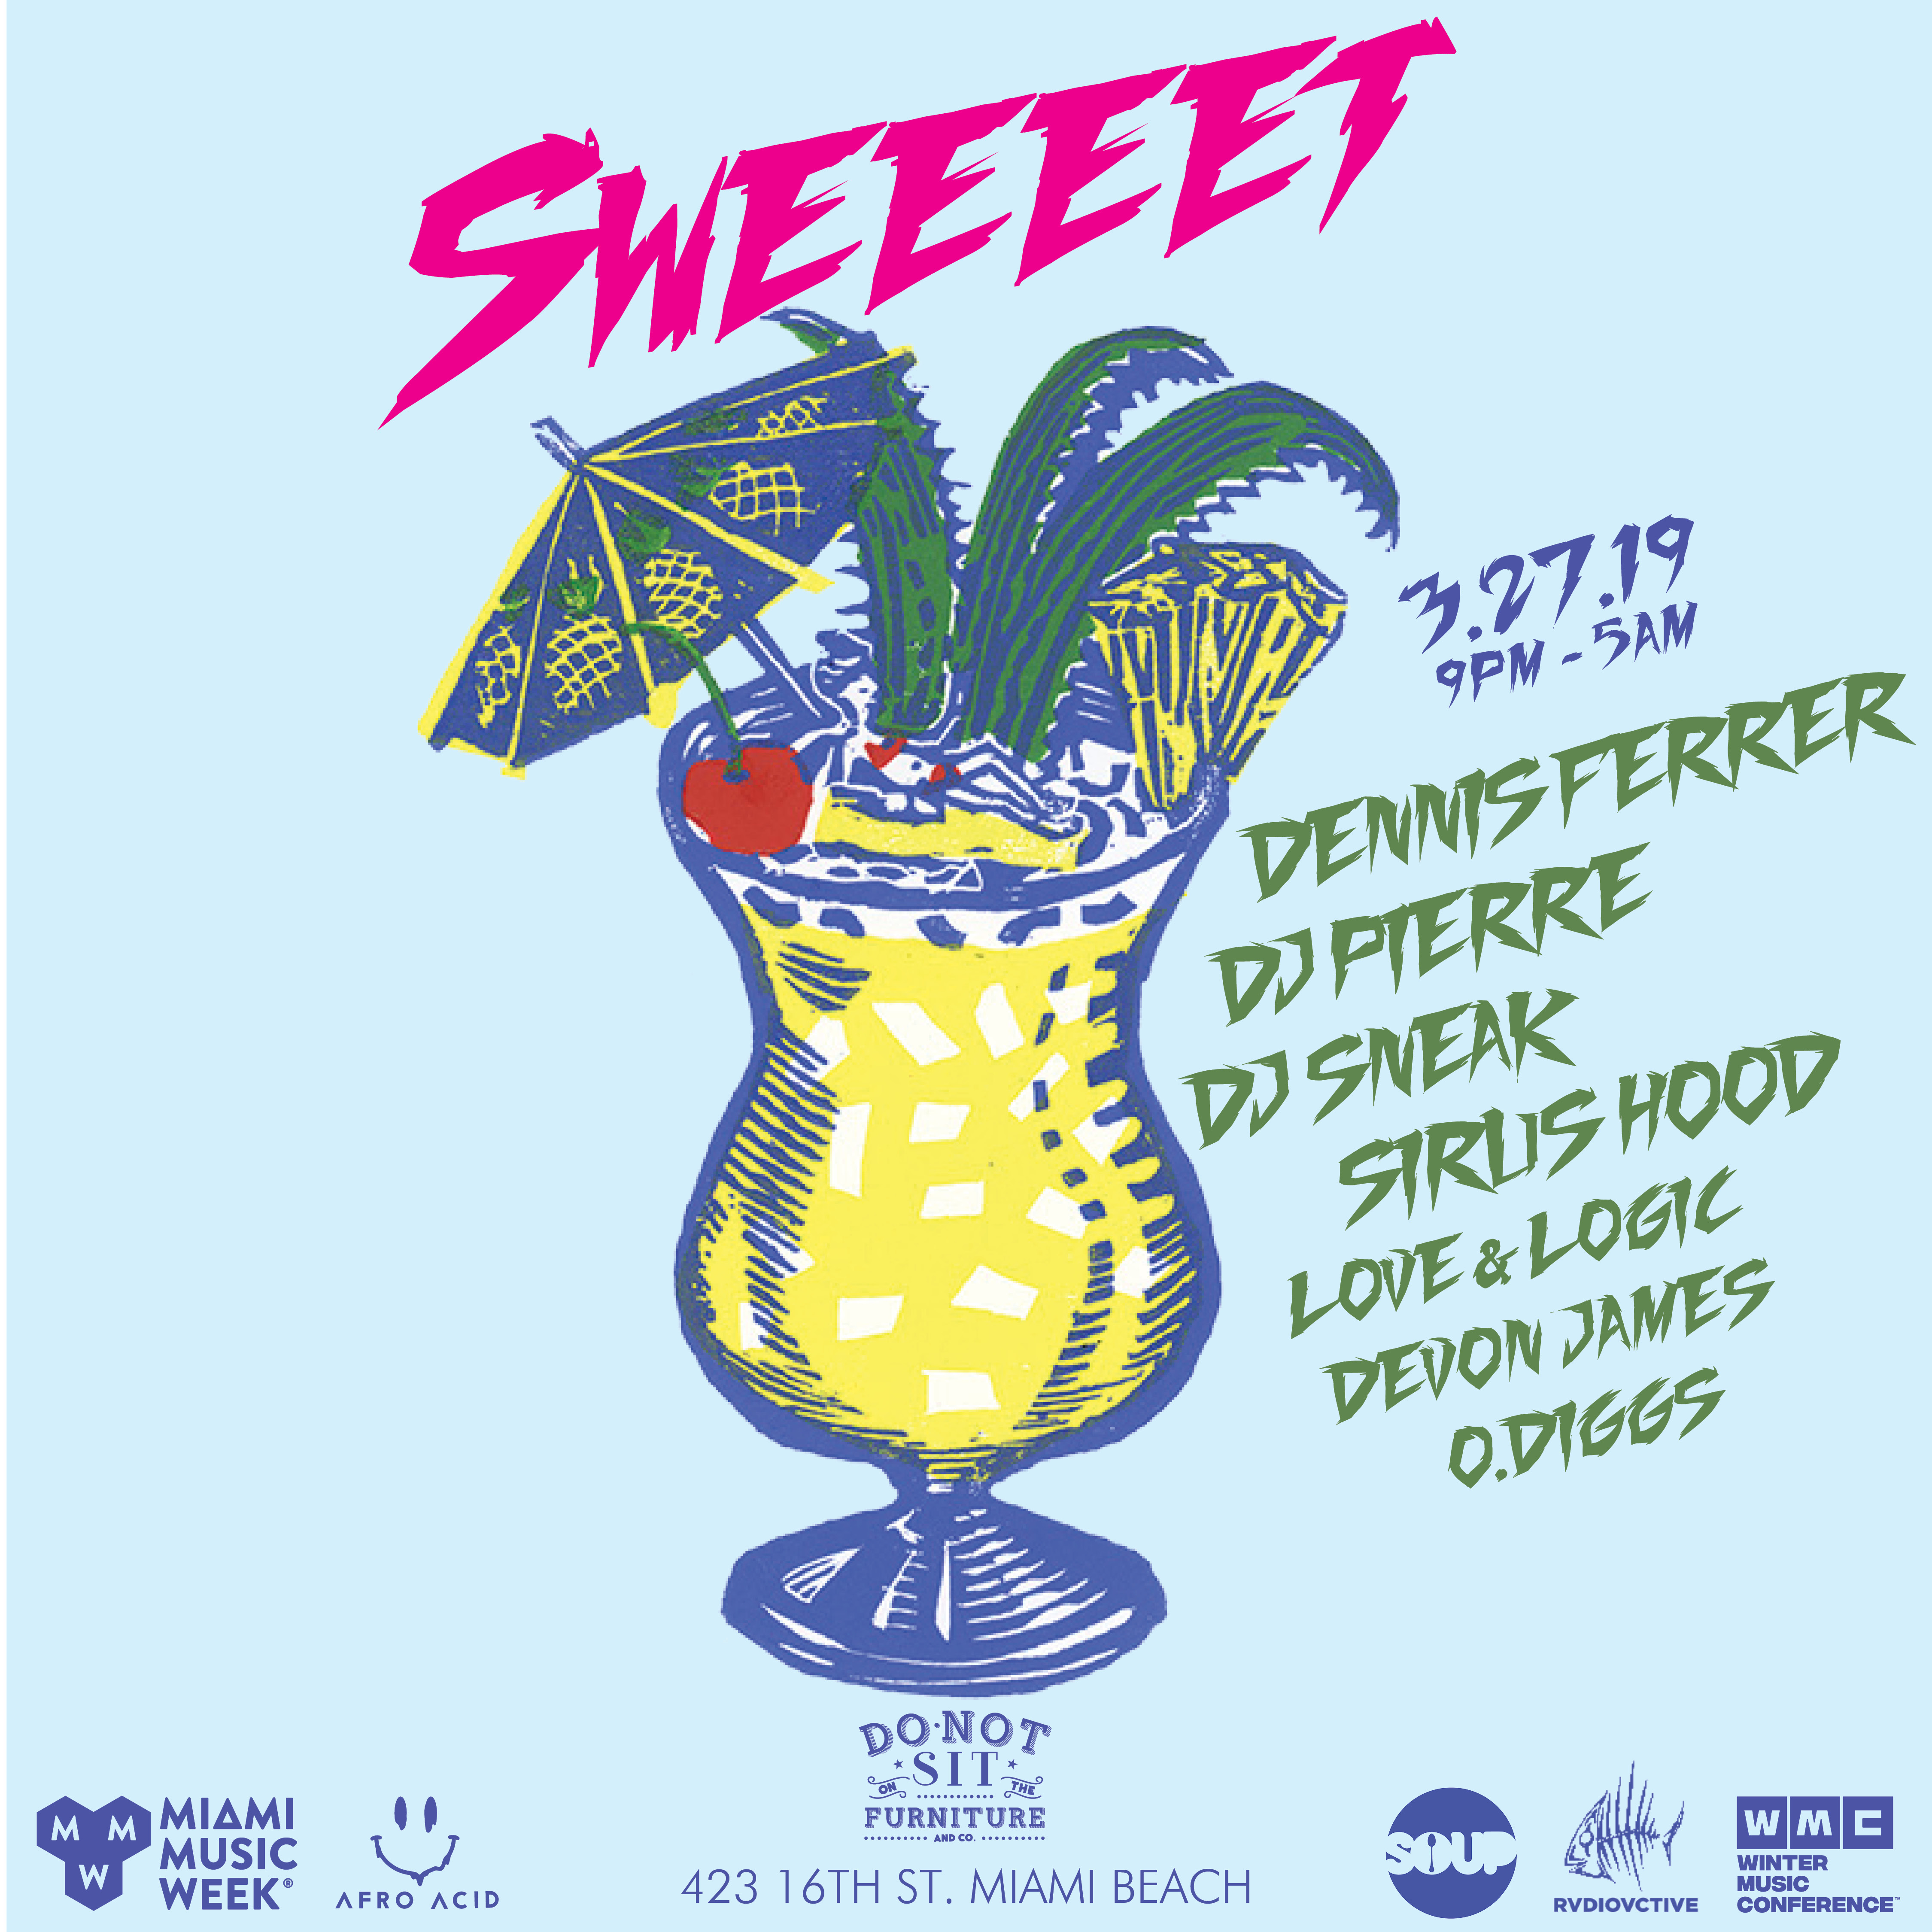 Sweeeet w/ Dennis Ferrer, DJ Pierre, DJ Sneak, & more! Image